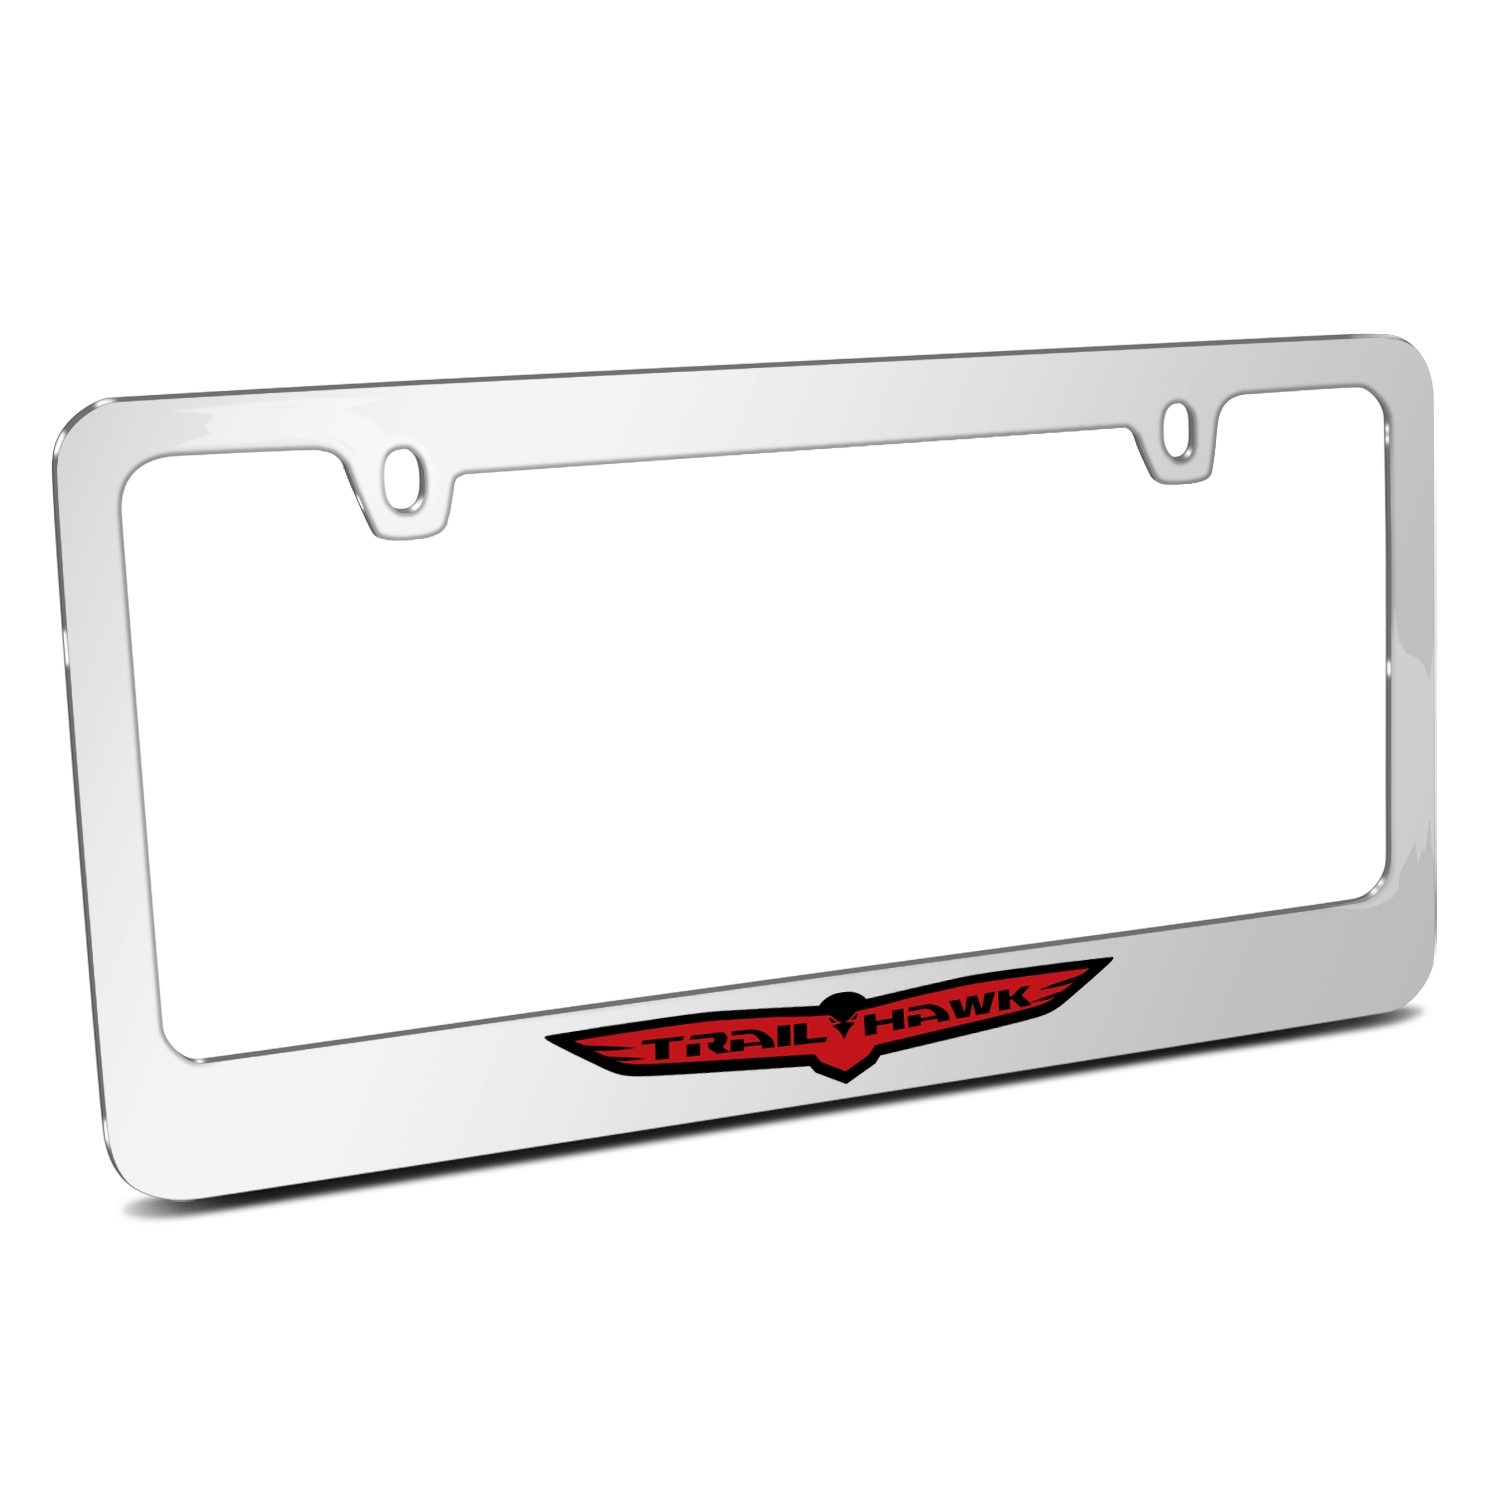 Jeep Trailhawk Mirror Chrome Metal License Plate Frame